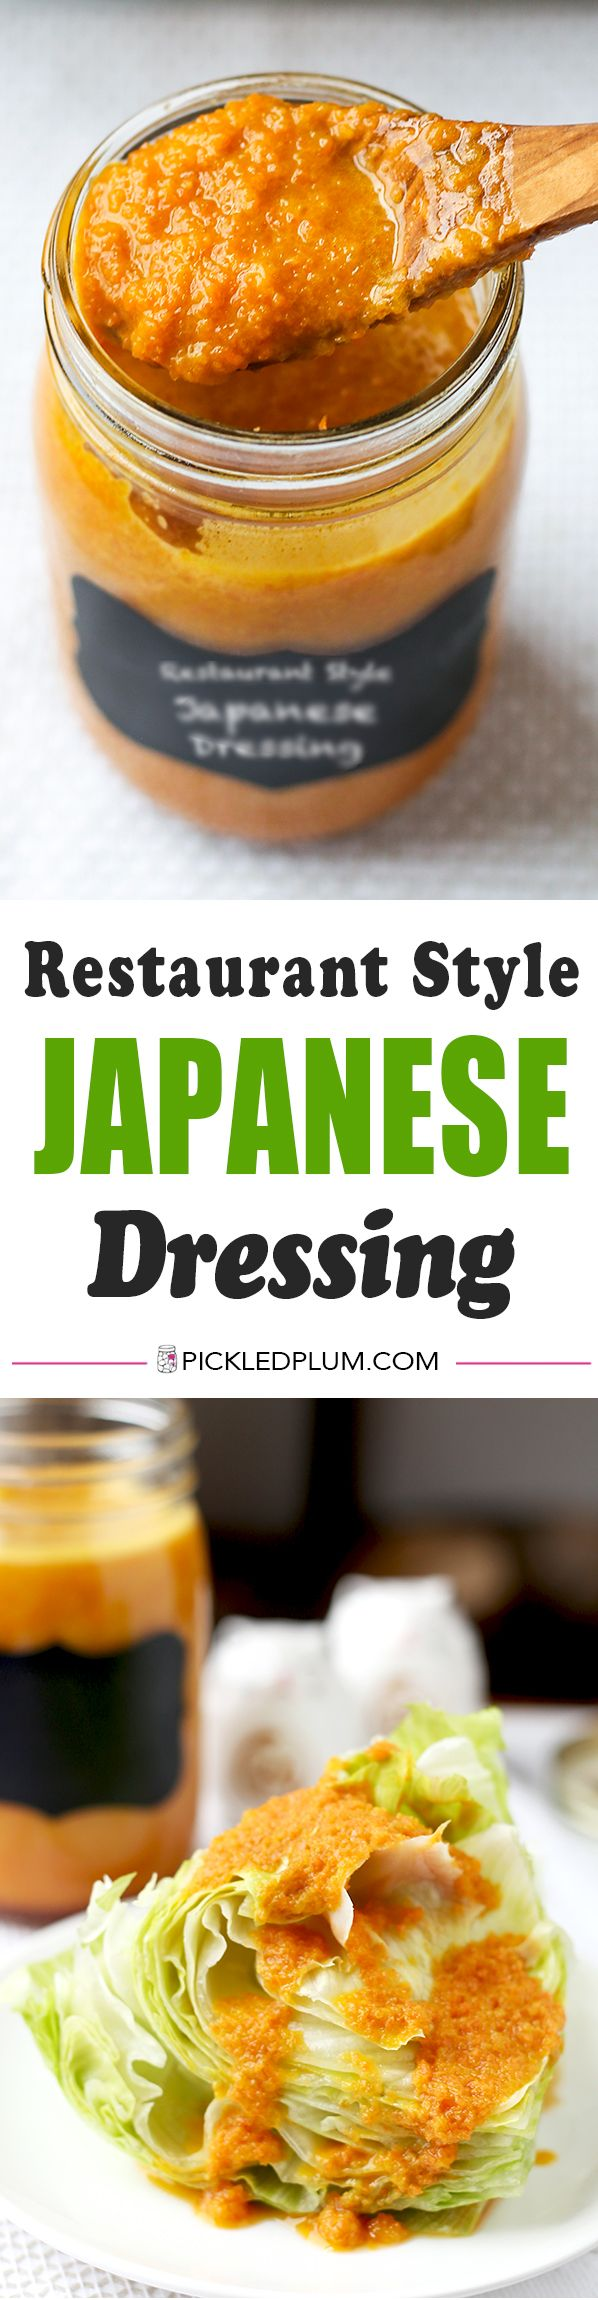 Restaurant Style Japanese Dressing - Make this iconic and delicious Japanese Restaurant Style Ginger Dressing Recipe in less than 10 minutes! Japanese food recipes | homemade salad dressing recipes | ginger carrot dressing | Japanese cuisine | pickledplum.com